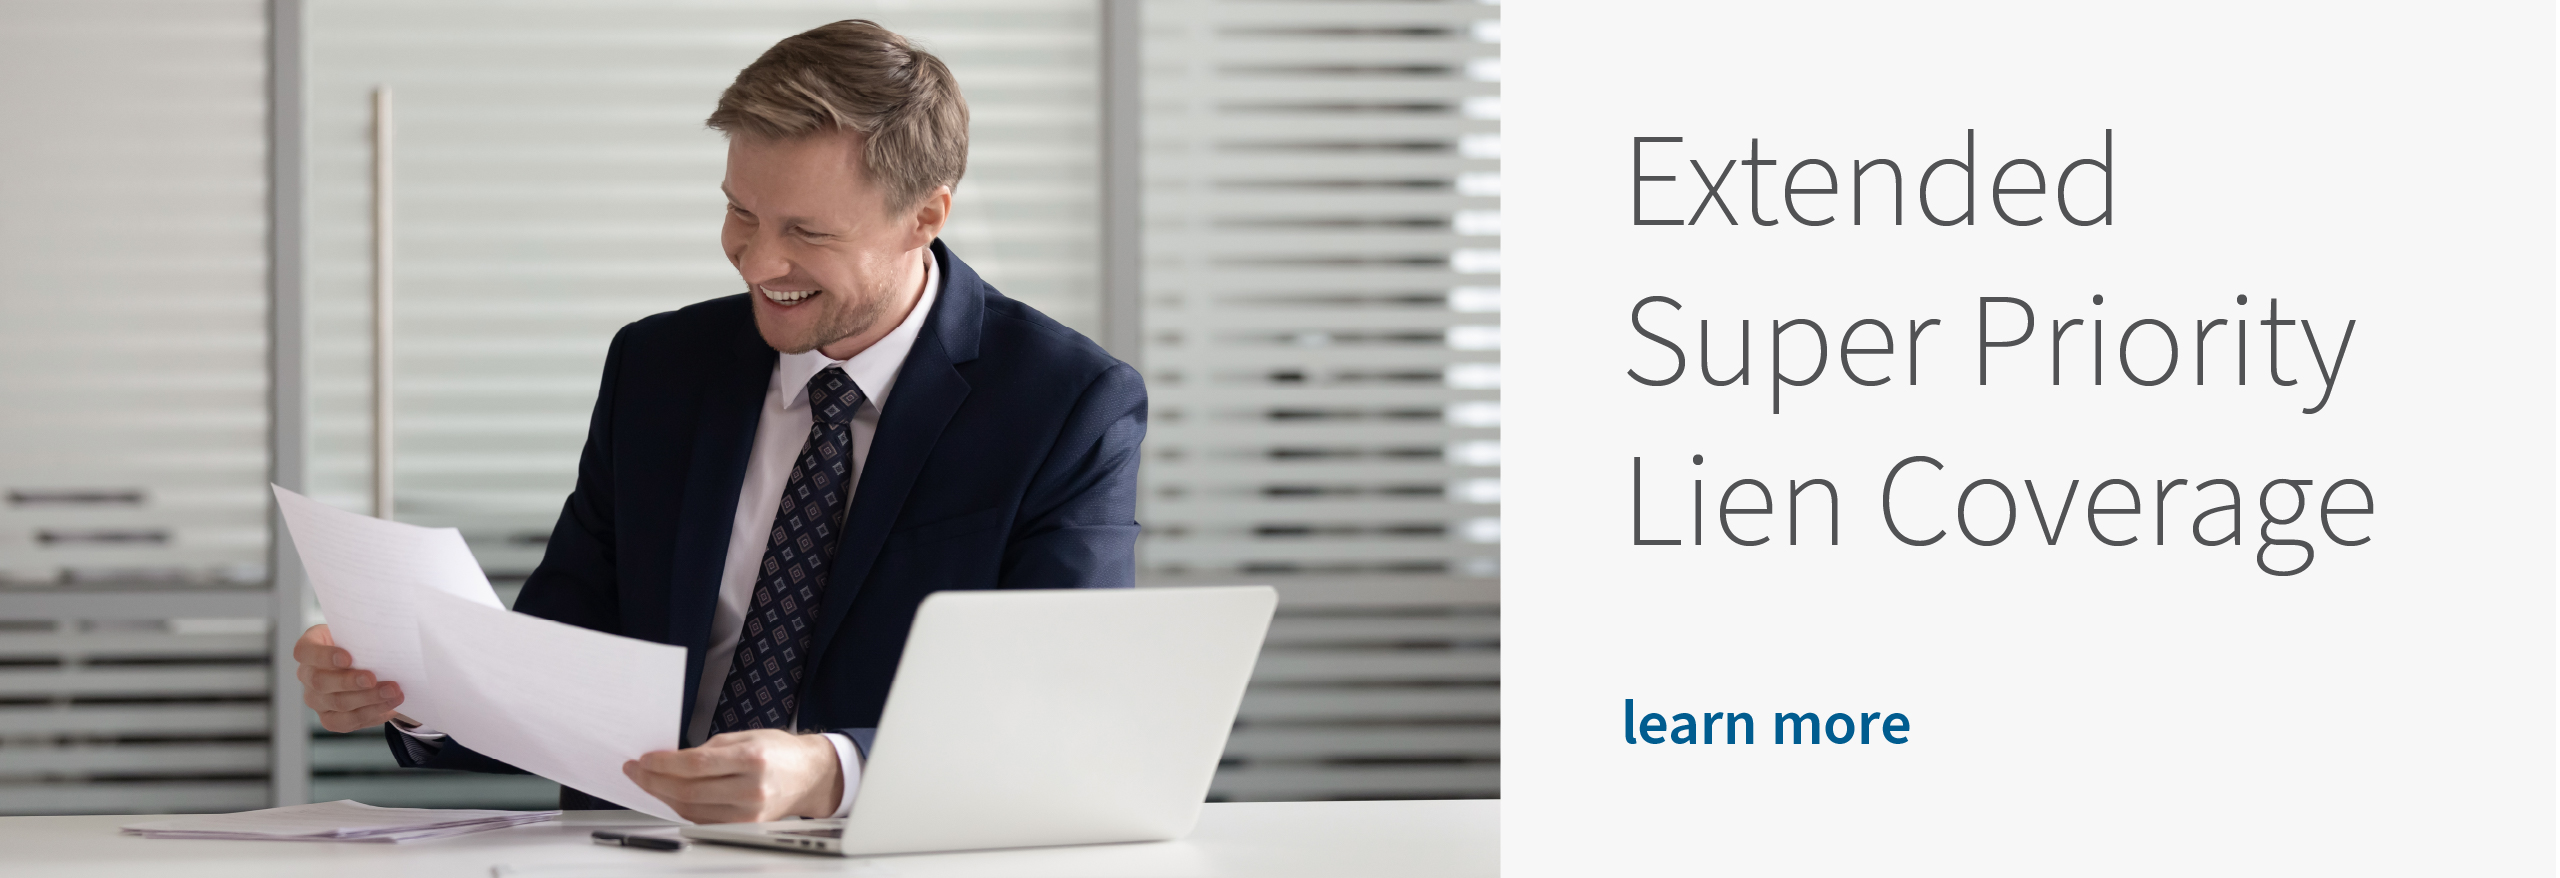 Introducing the Extended Super Priority Lien Coverage